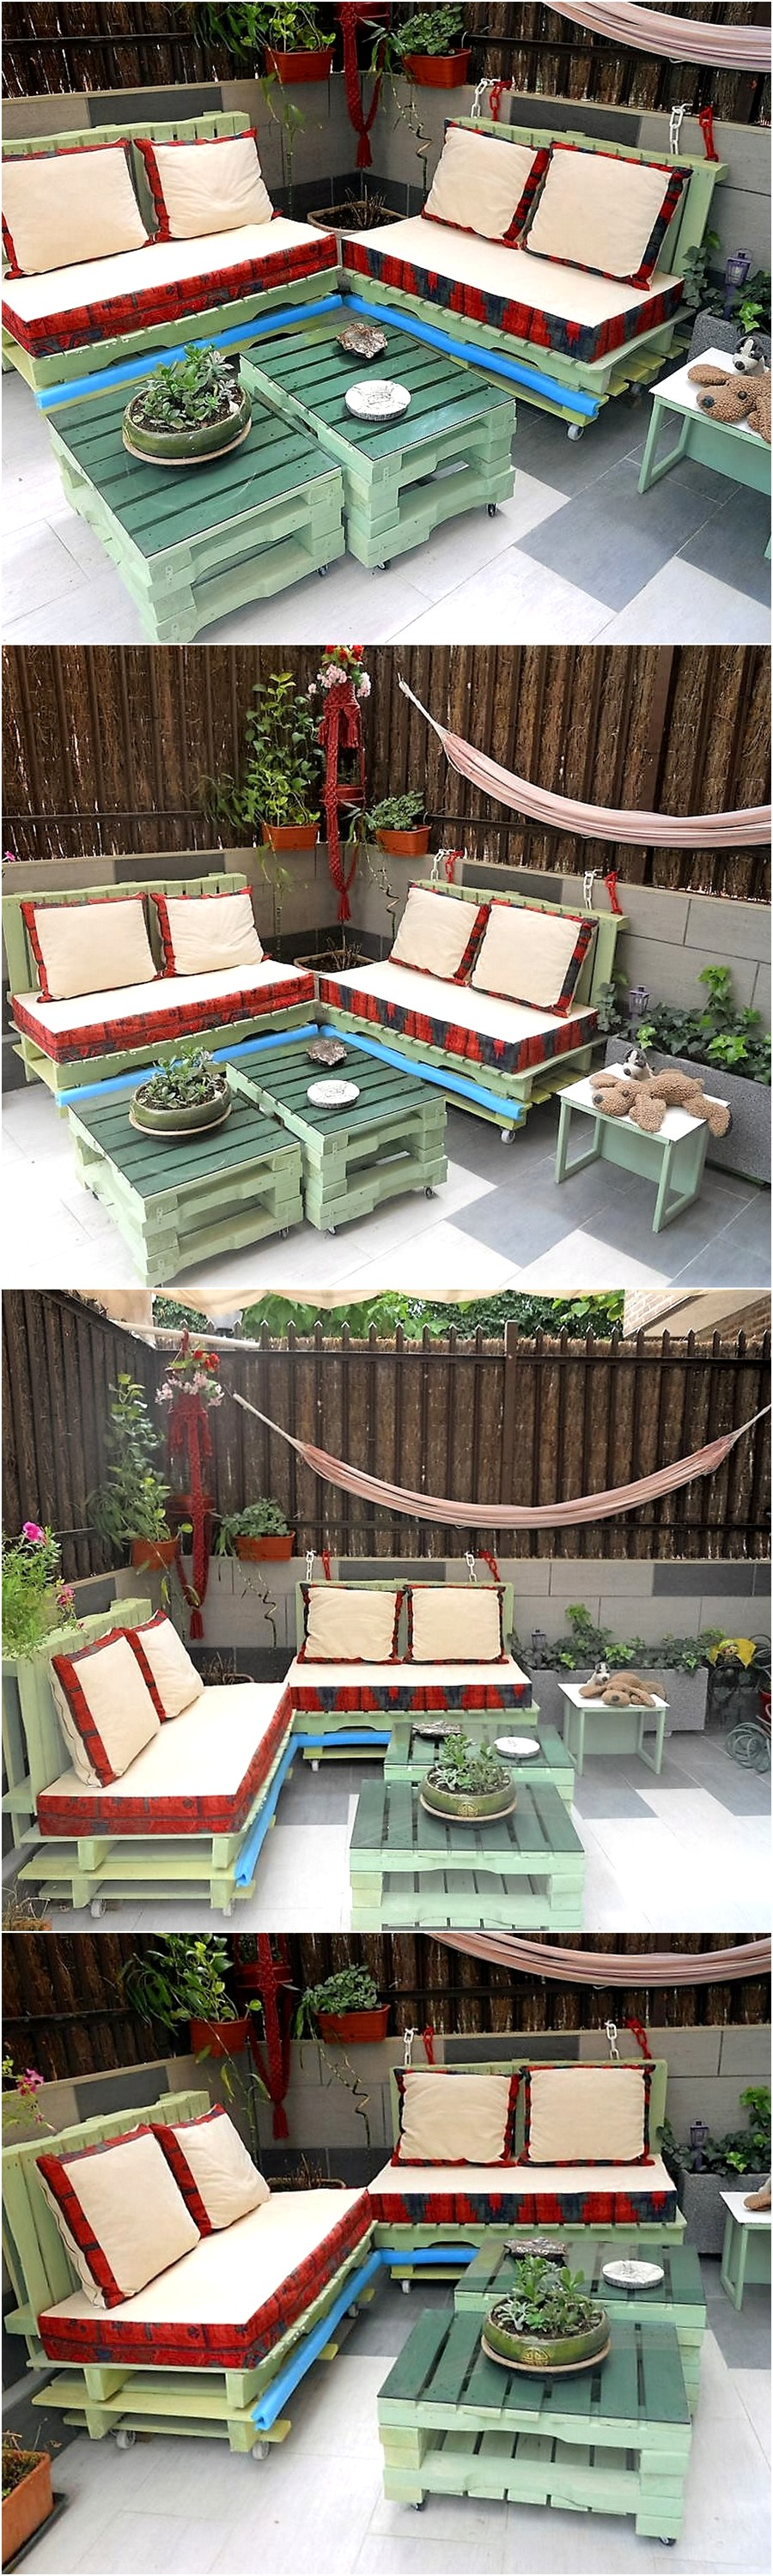 stunning-pallet-garden-furniture-set